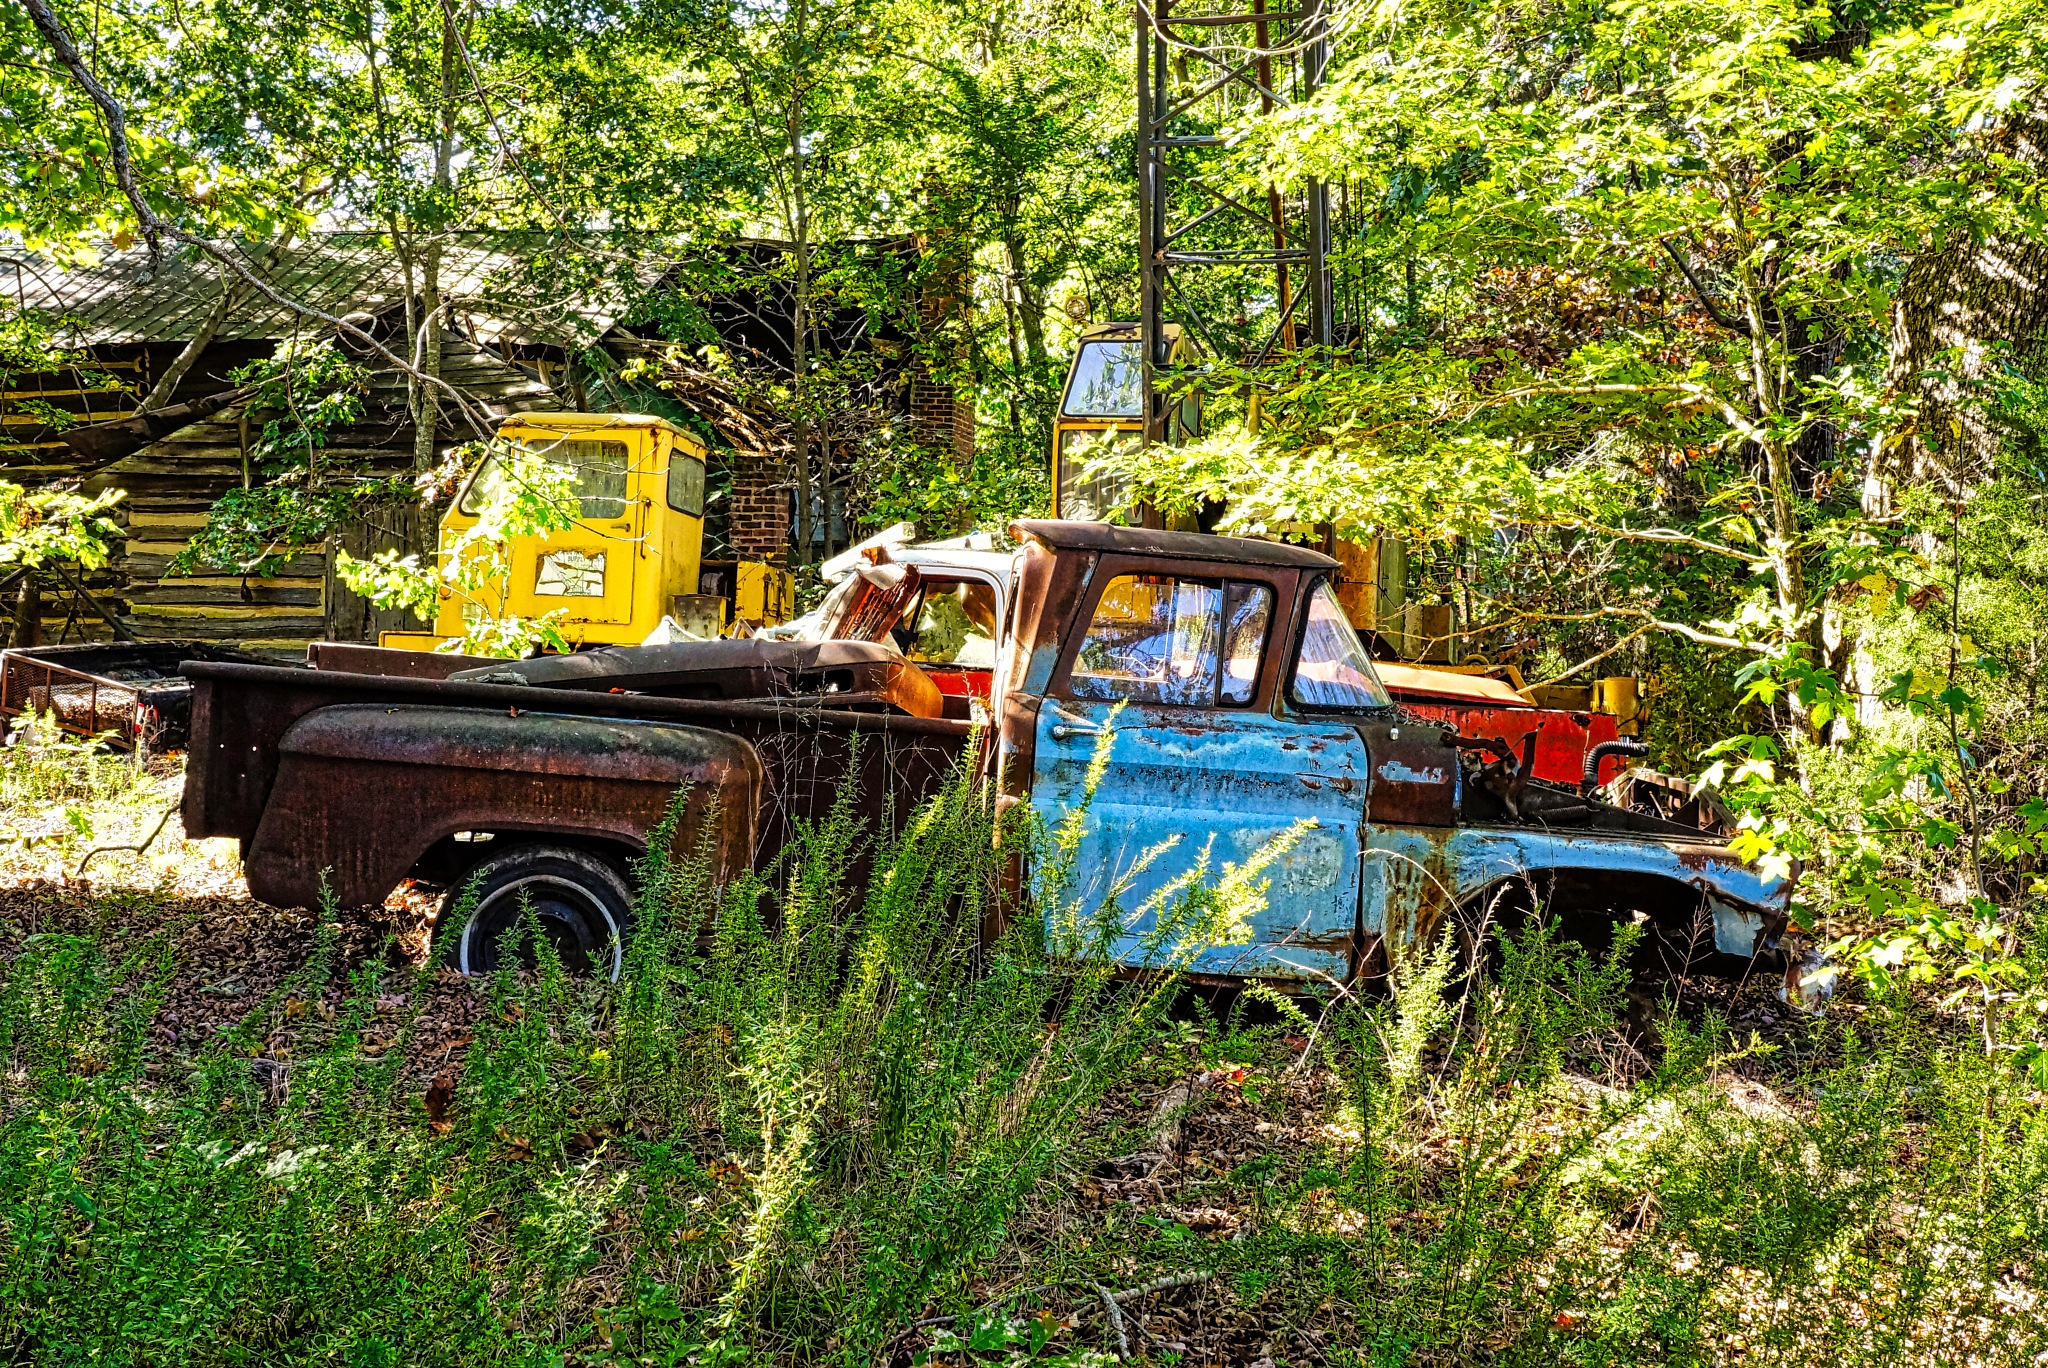 Chevy Pickups In The Woods by Harrison Hanville